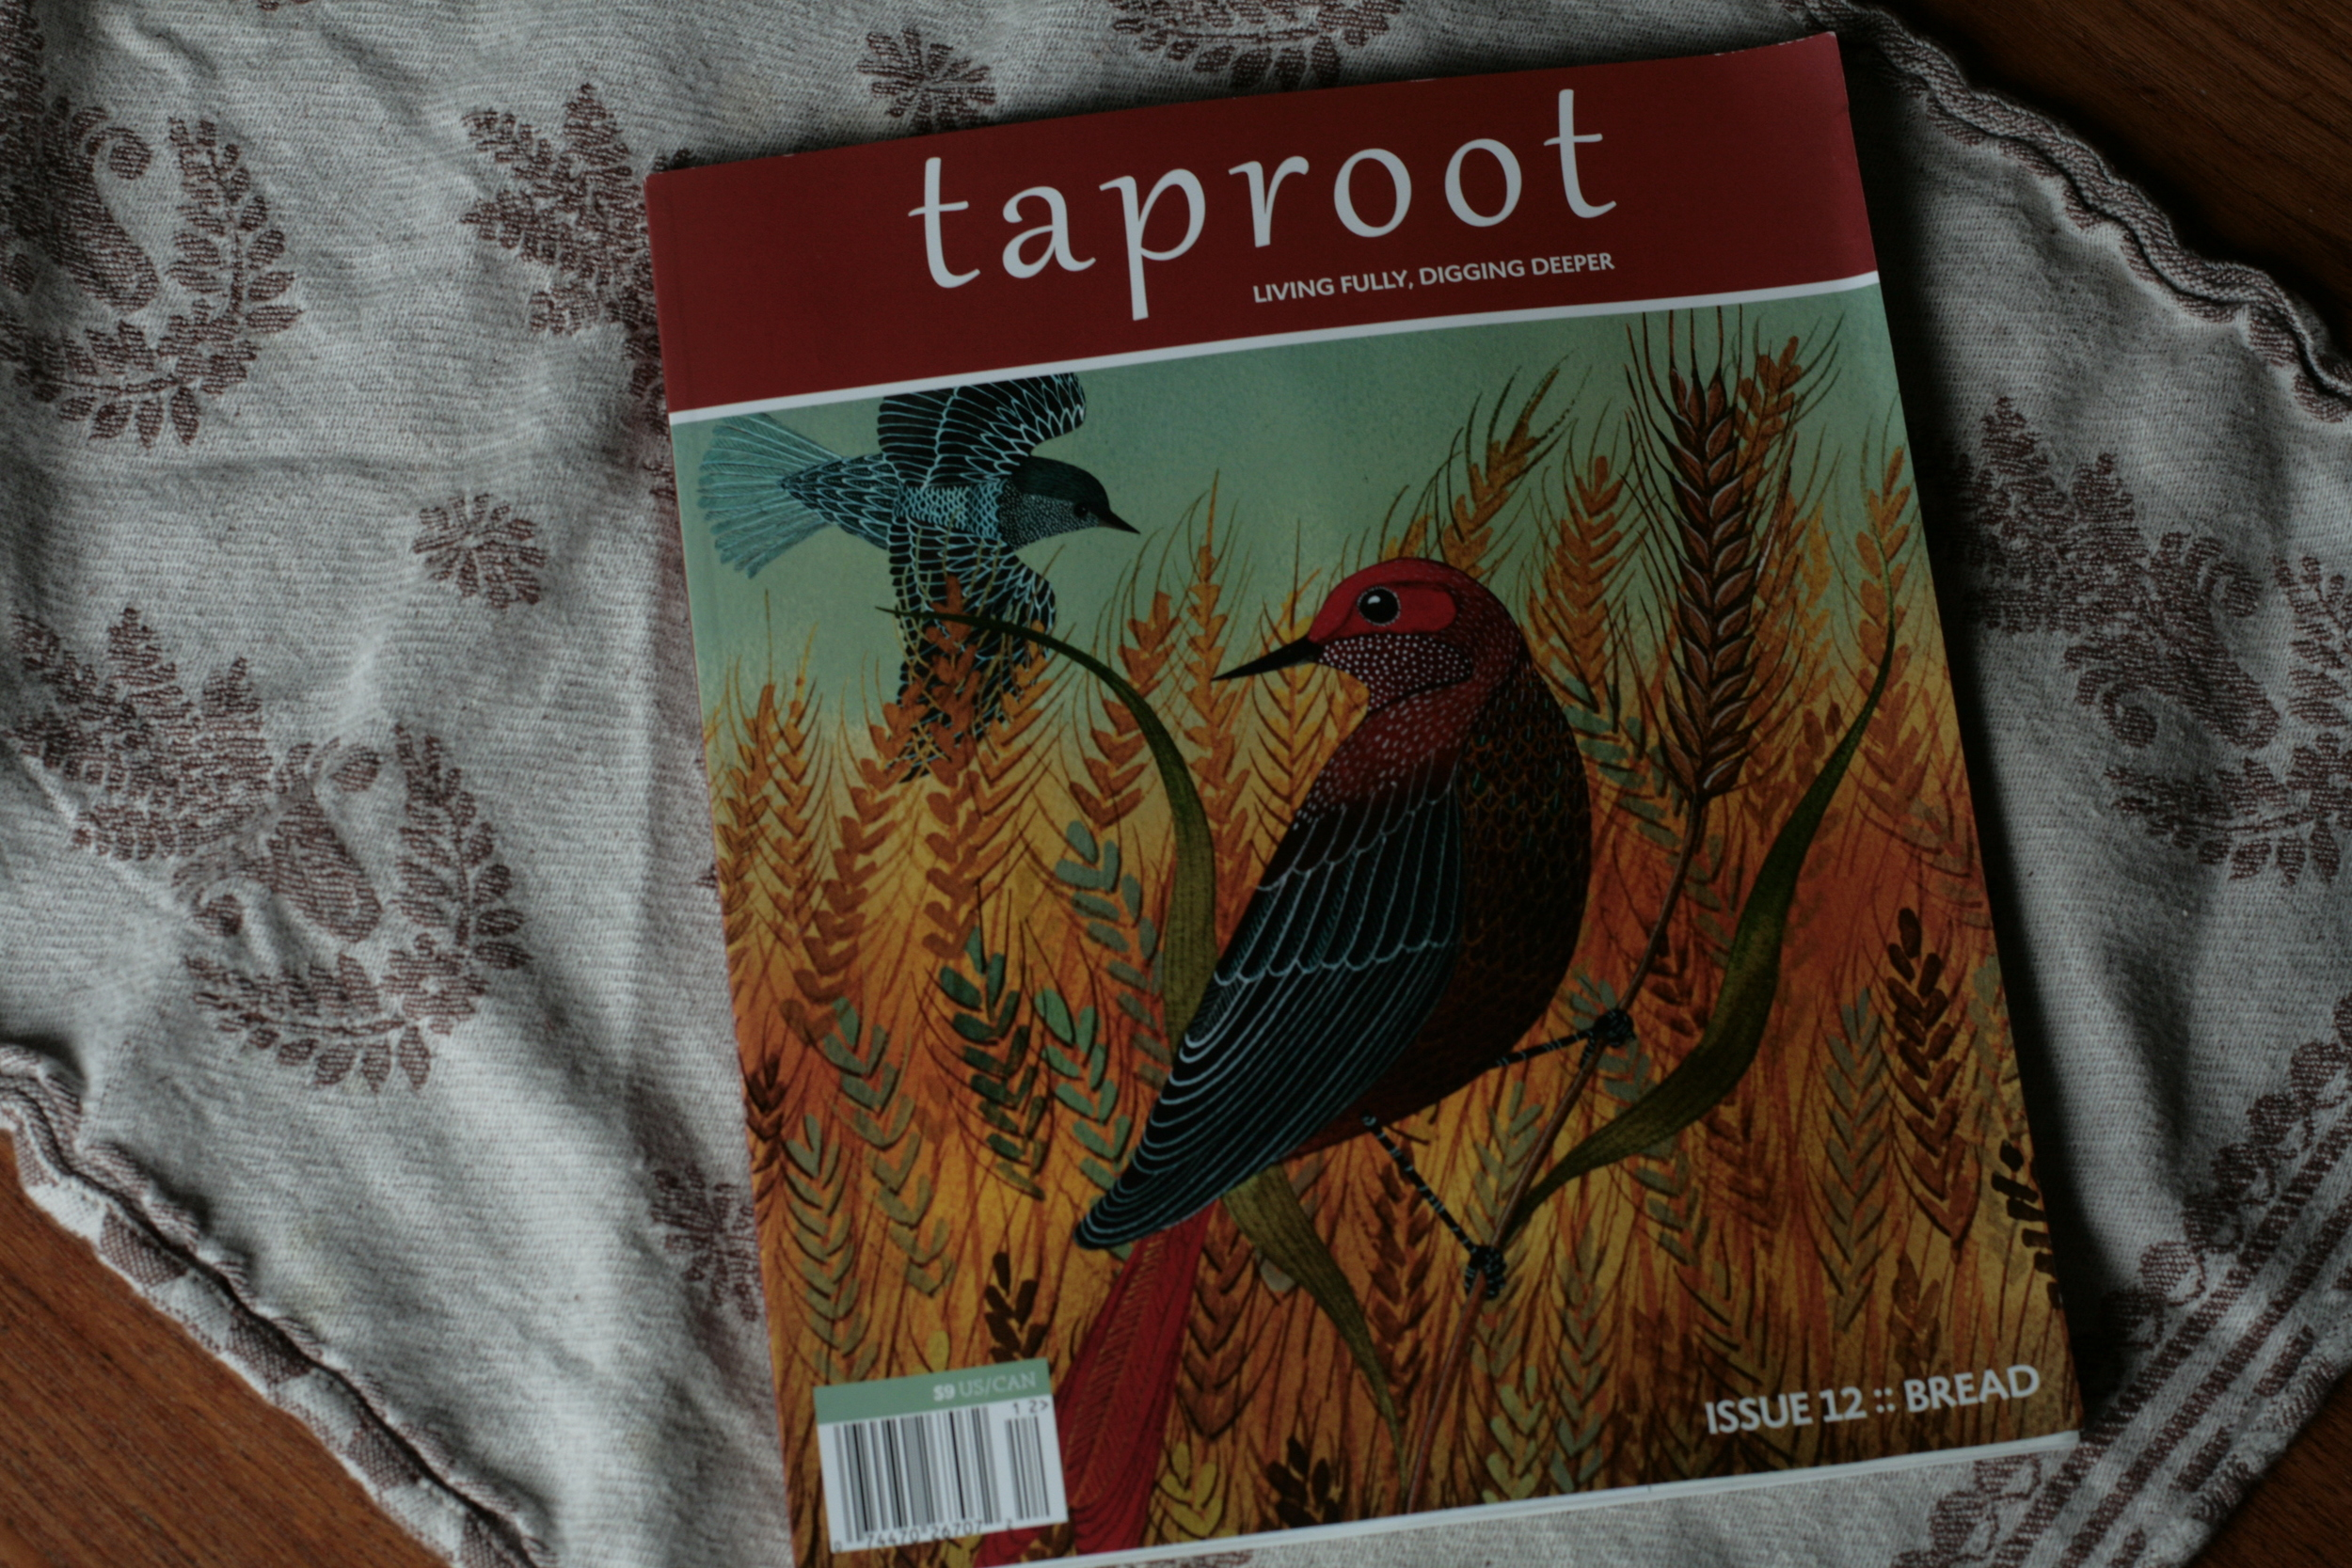 Taproot BREAD